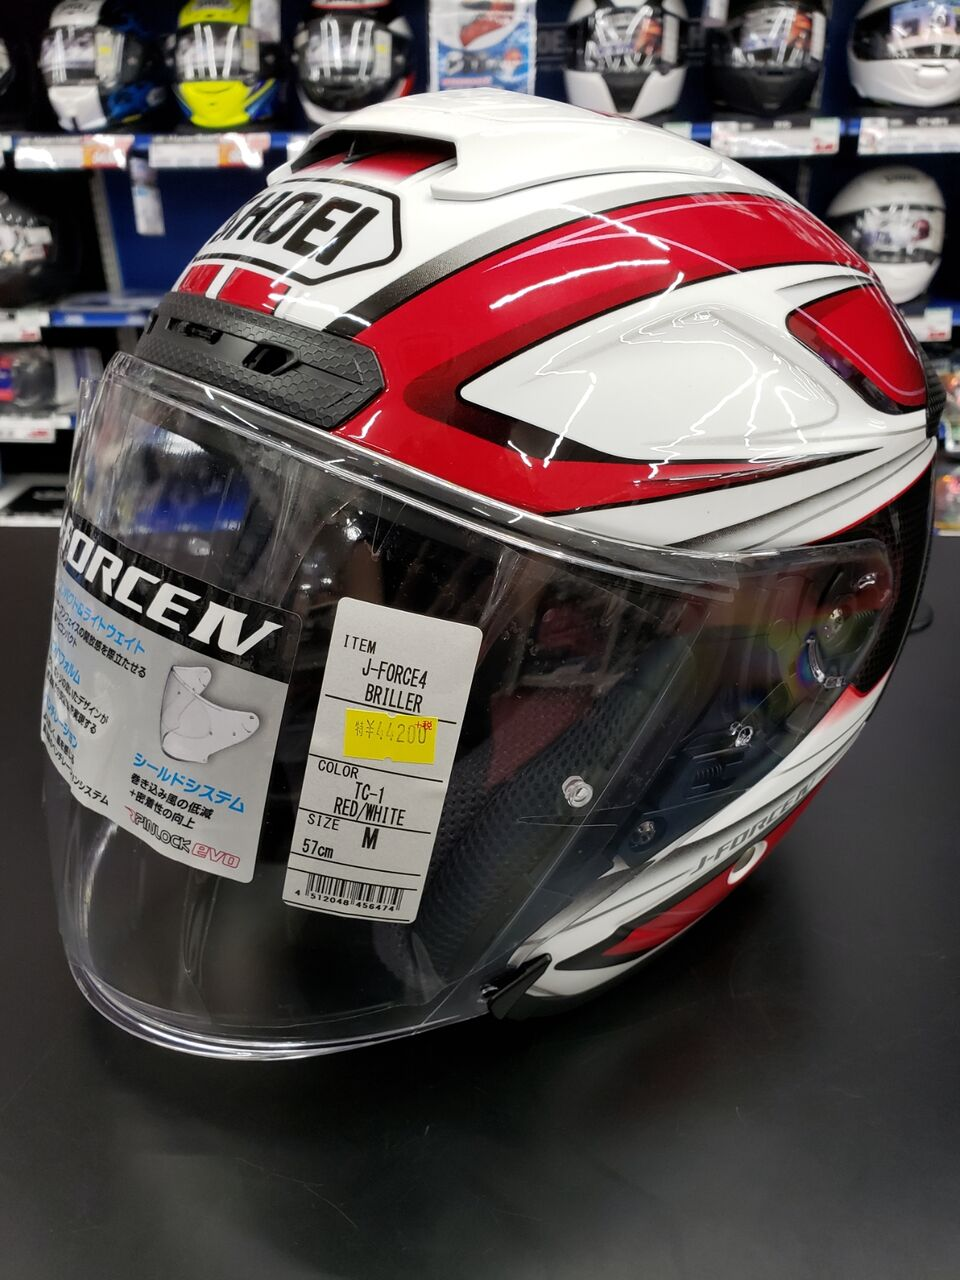 SHOEI J-Force4 BRILLER TC-1 (RED/WHITE)